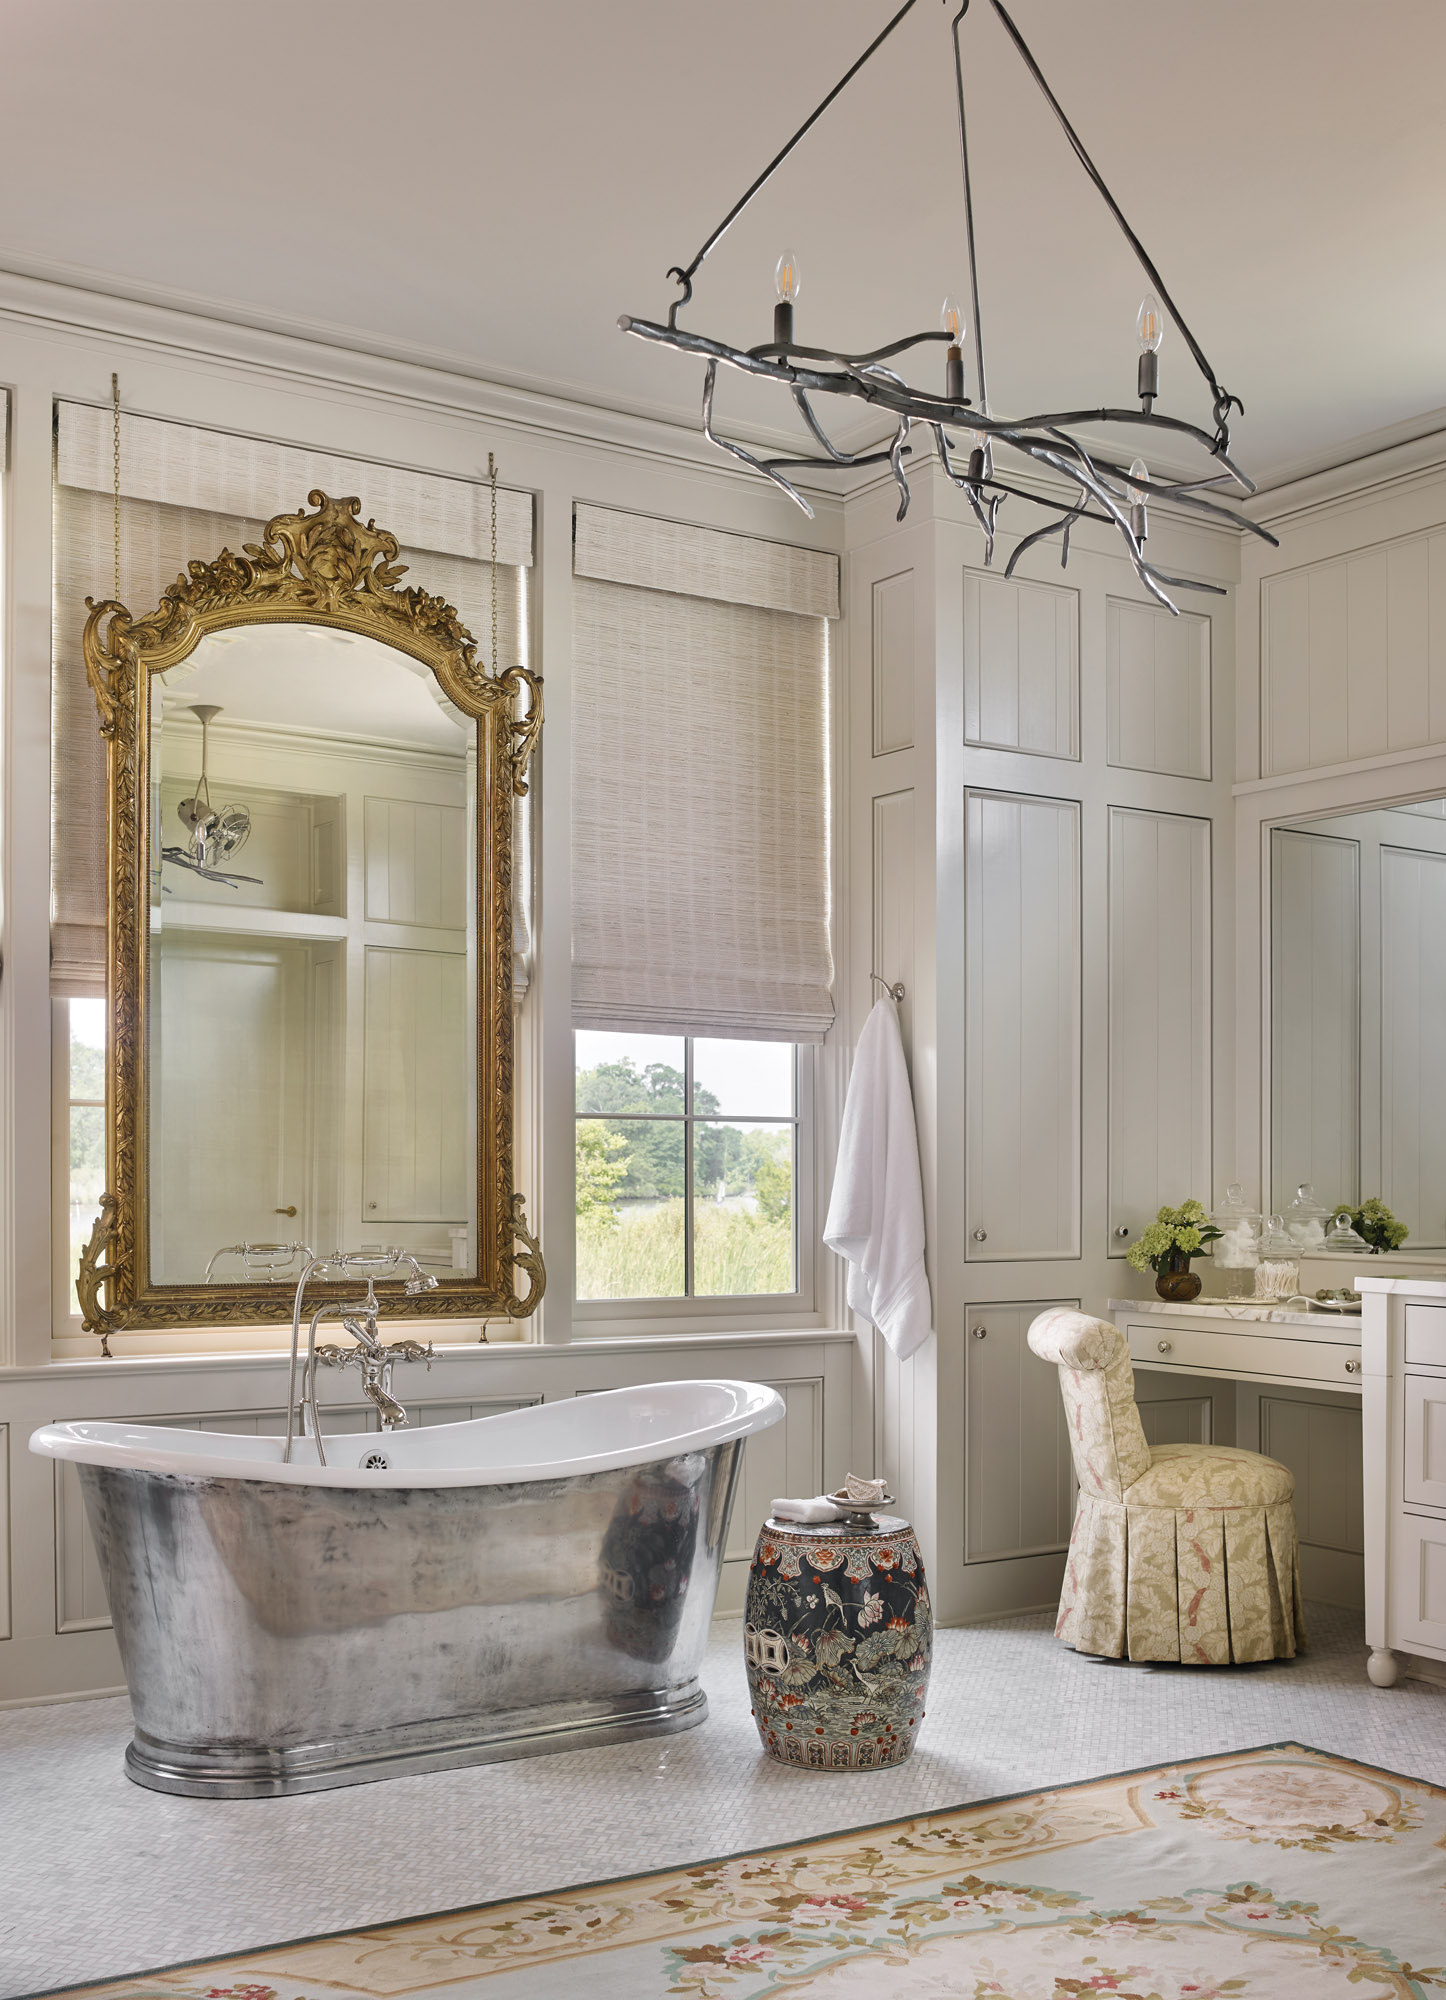 Craftsmanship is evident even in the master bath. Suspended on chains in front of a window overlooking the bayou, an heirloom mirror lends privacy.